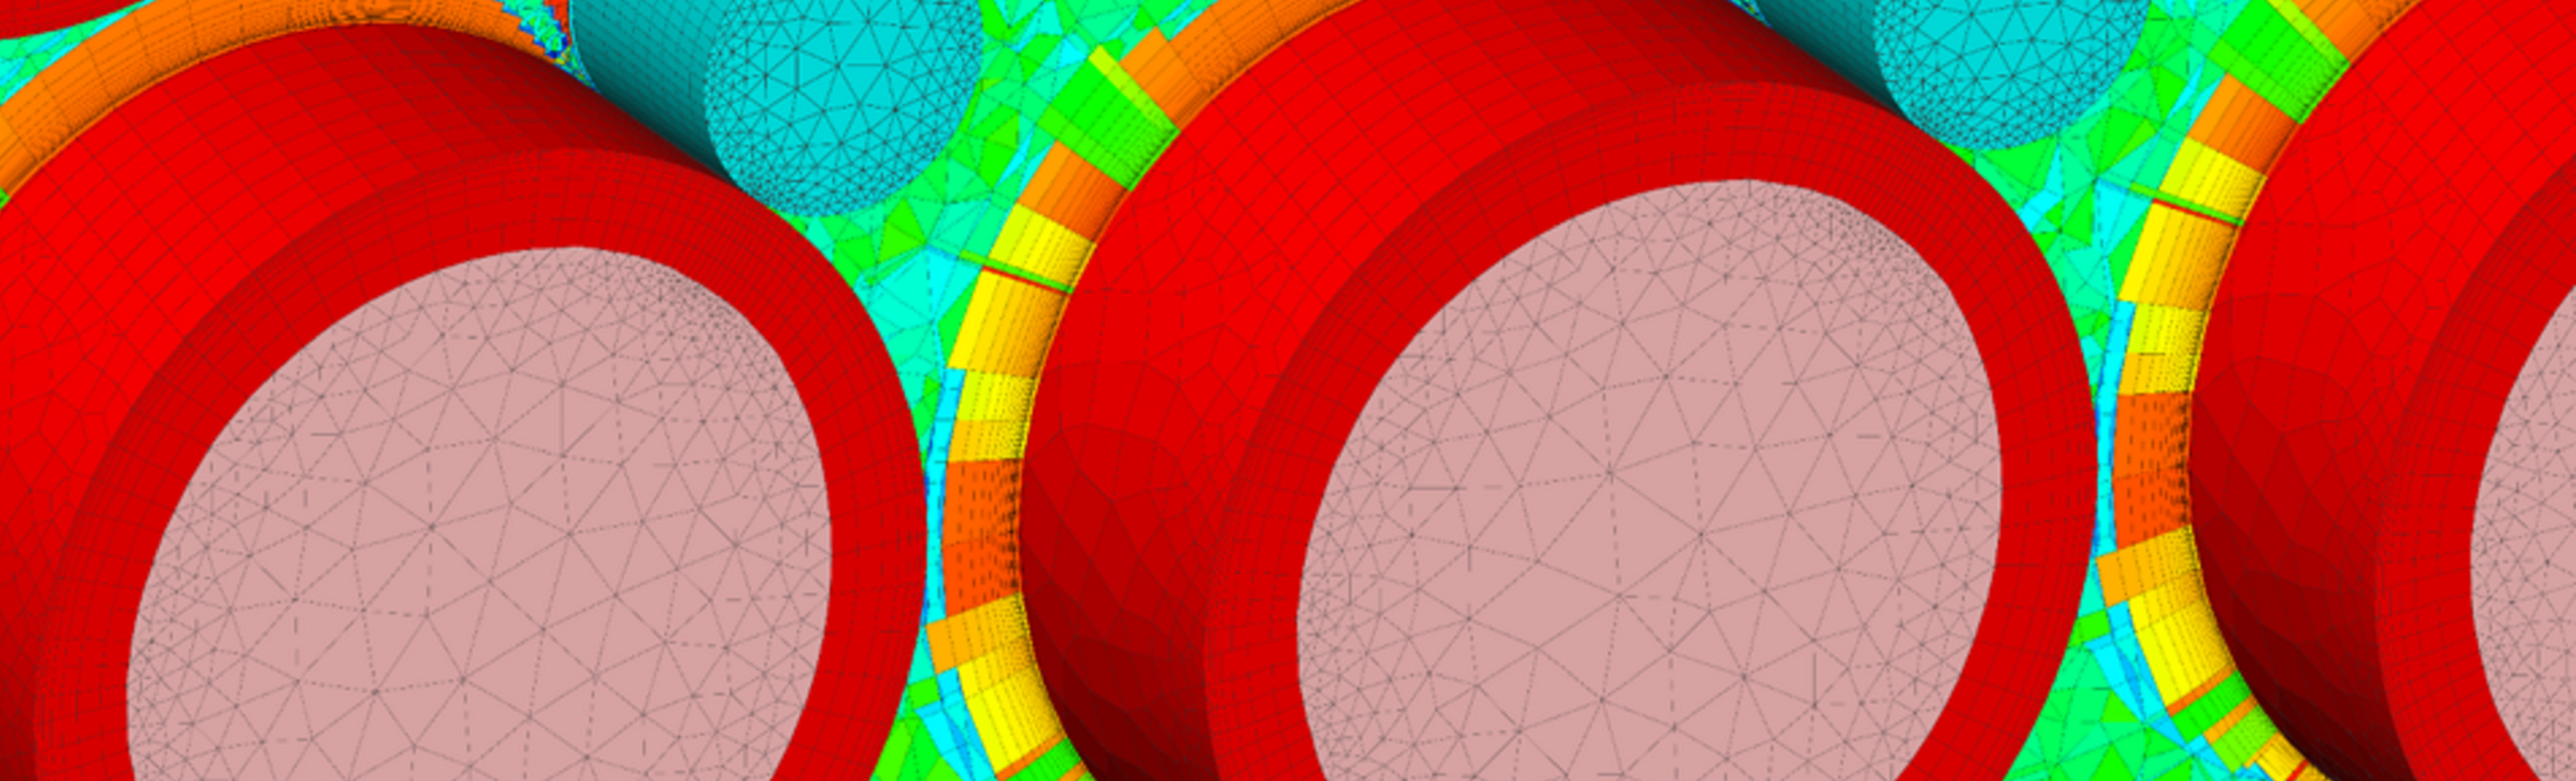 Pointwise Enables Accurate CFD for Nuclear Reactor Rod Bundles